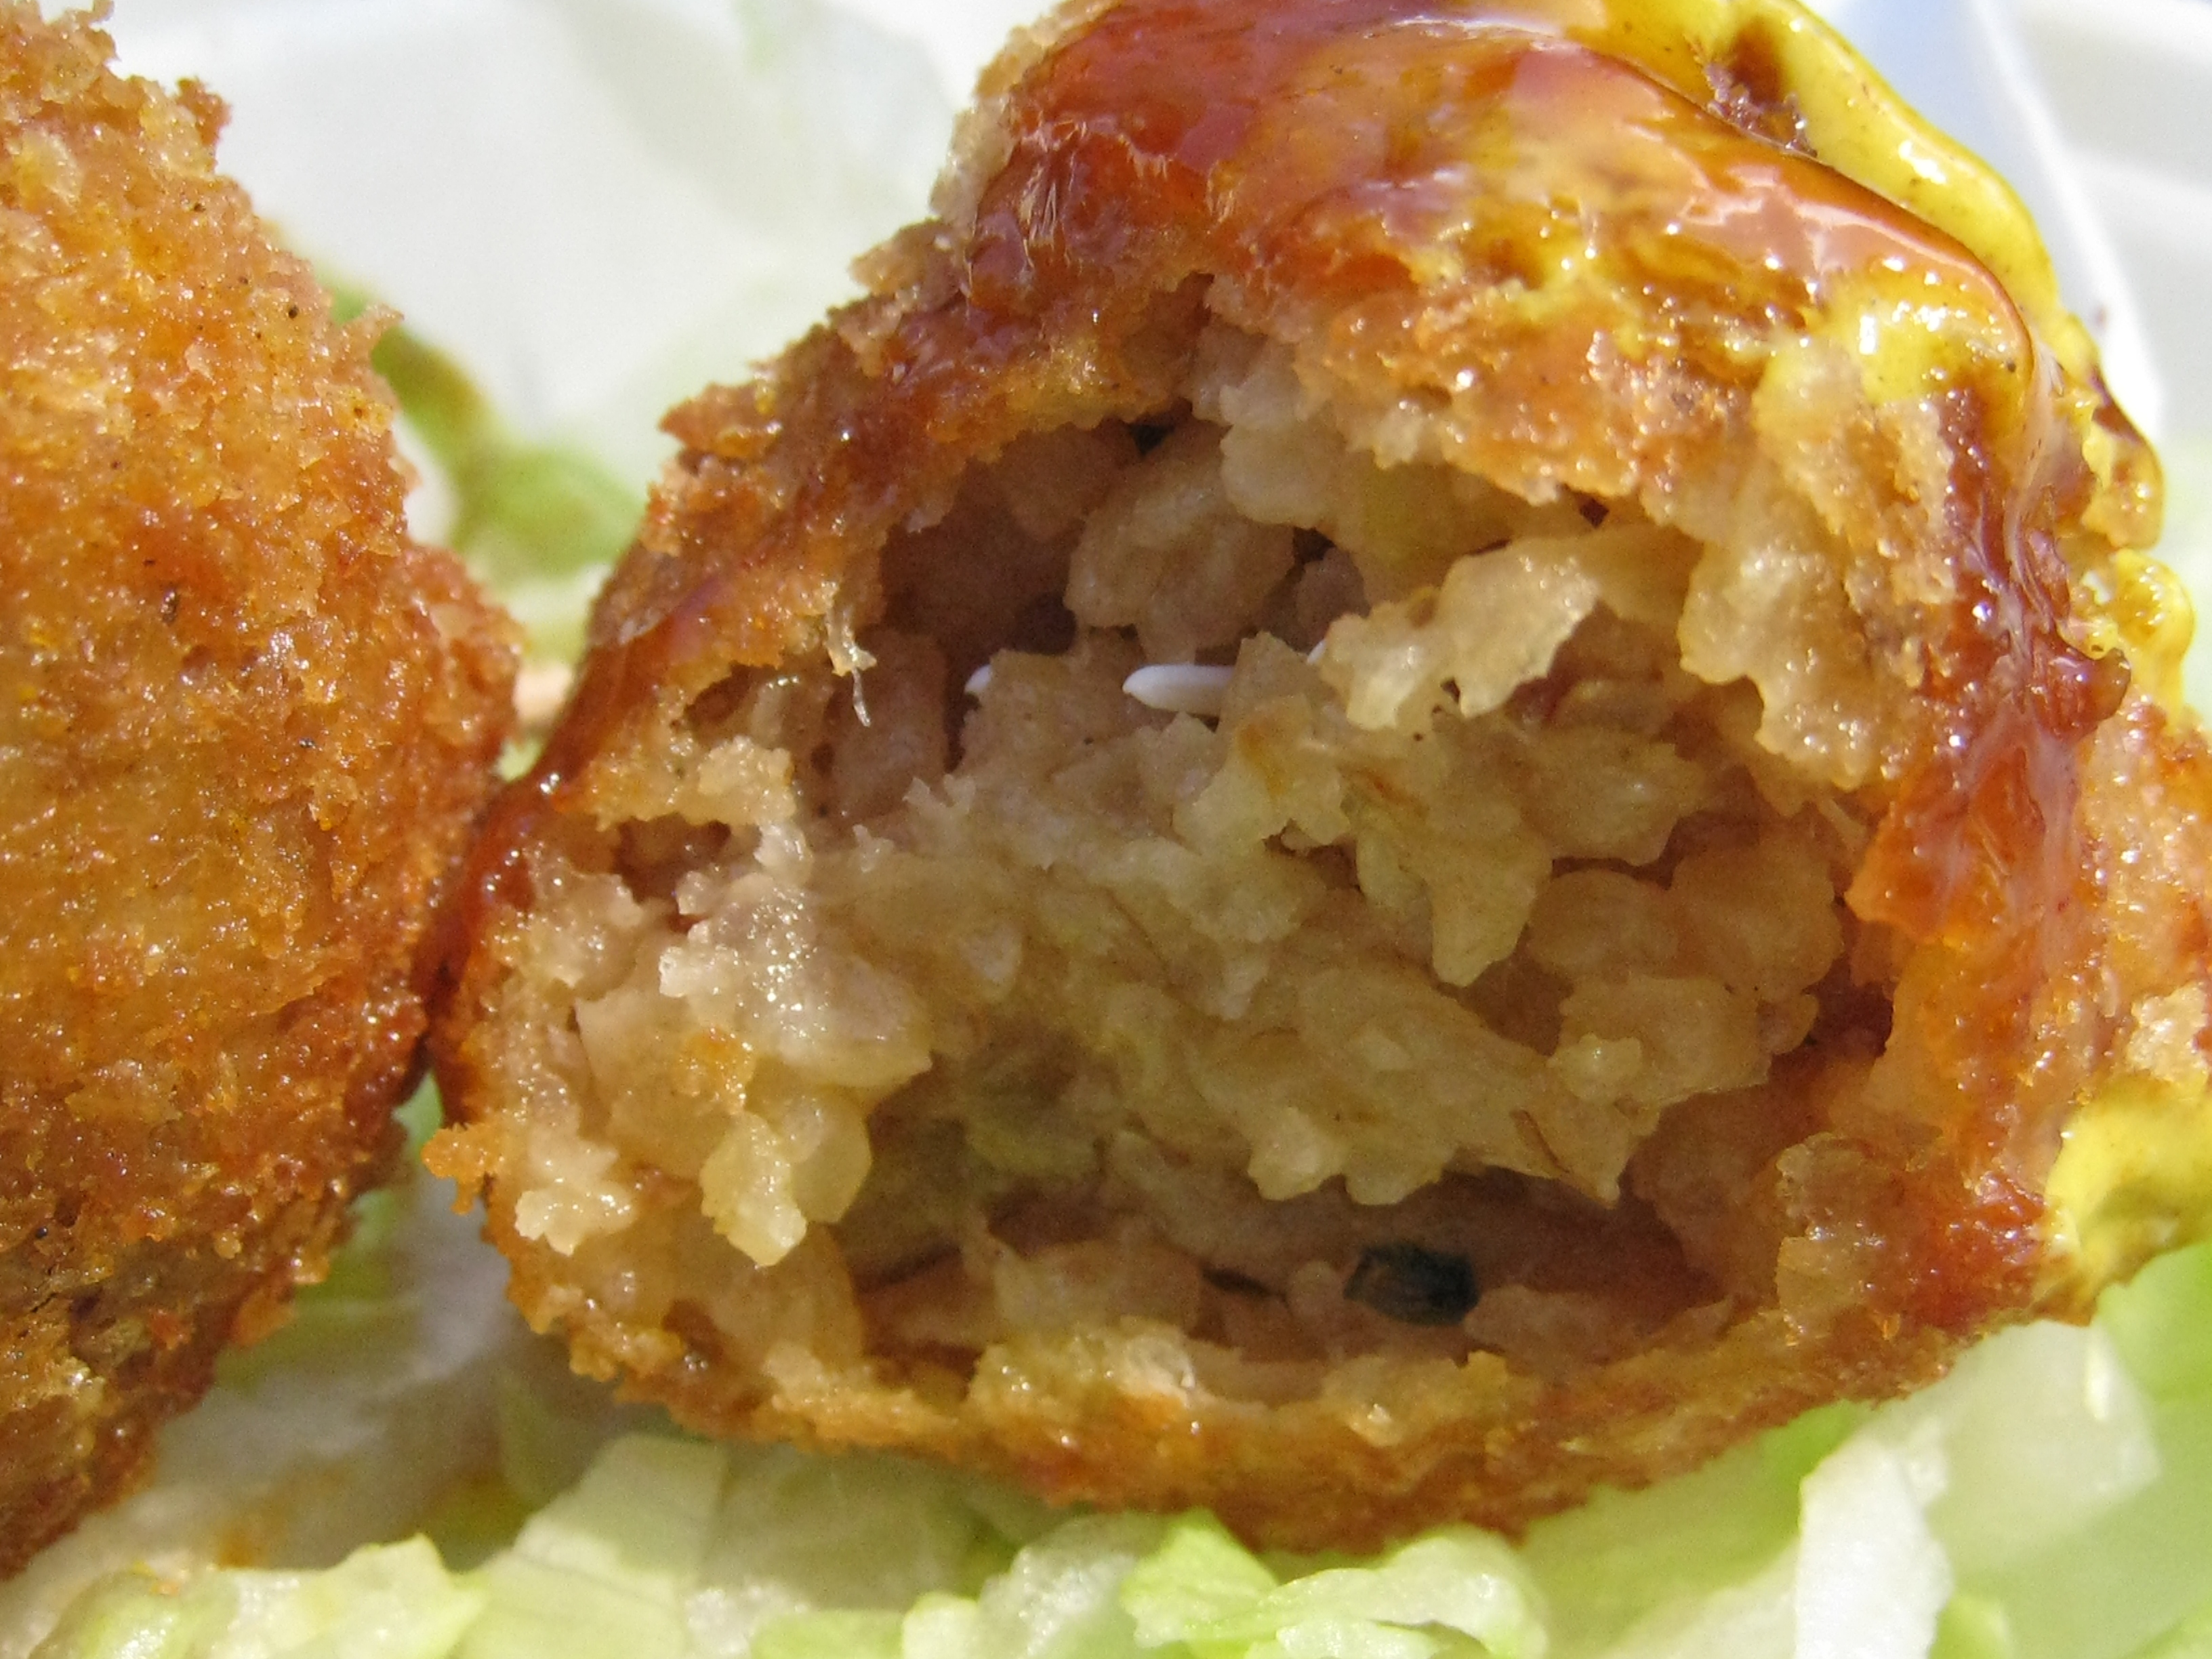 ... Dragon revisit: Fusion Fish and Chips and Addictive Fried Rice Balls